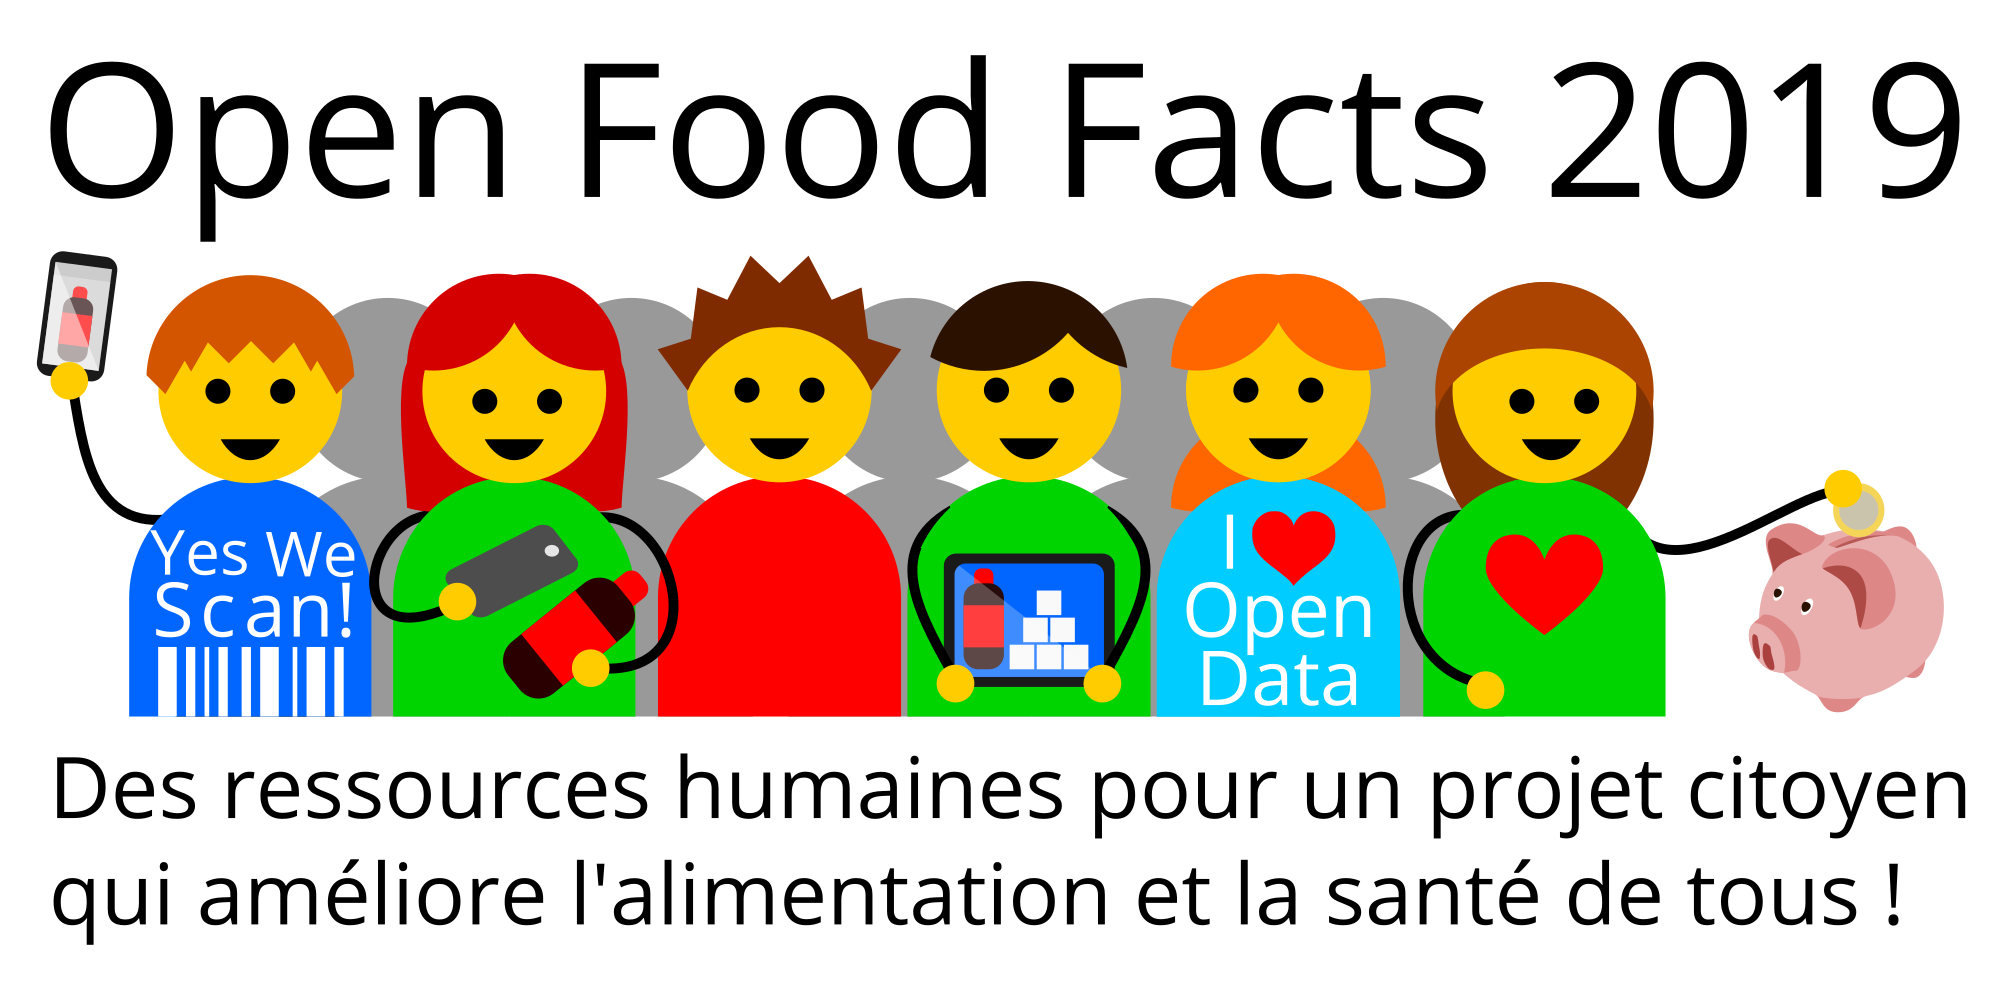 Open Food Facts 2019